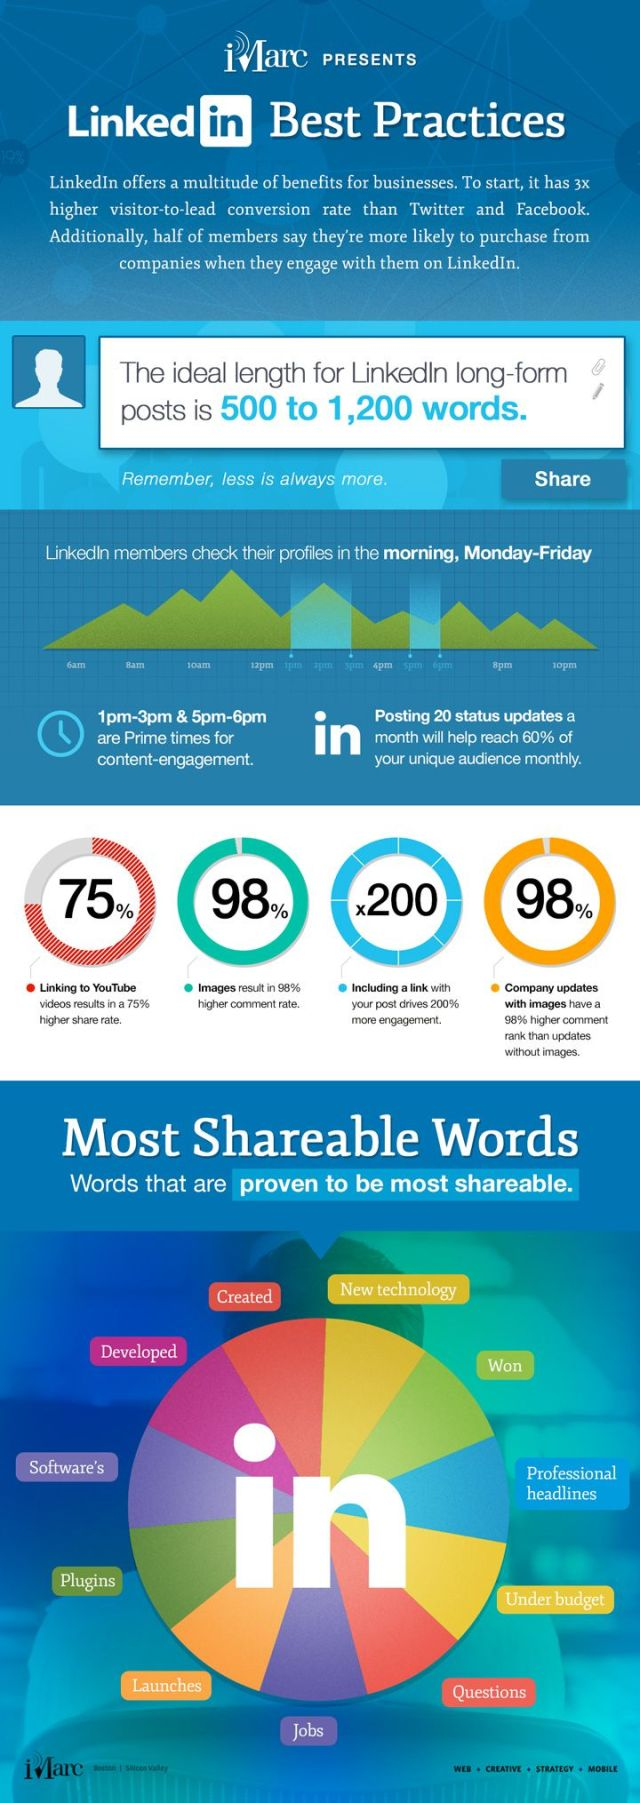 How to Get the Most Out of LinkedIn #infographic